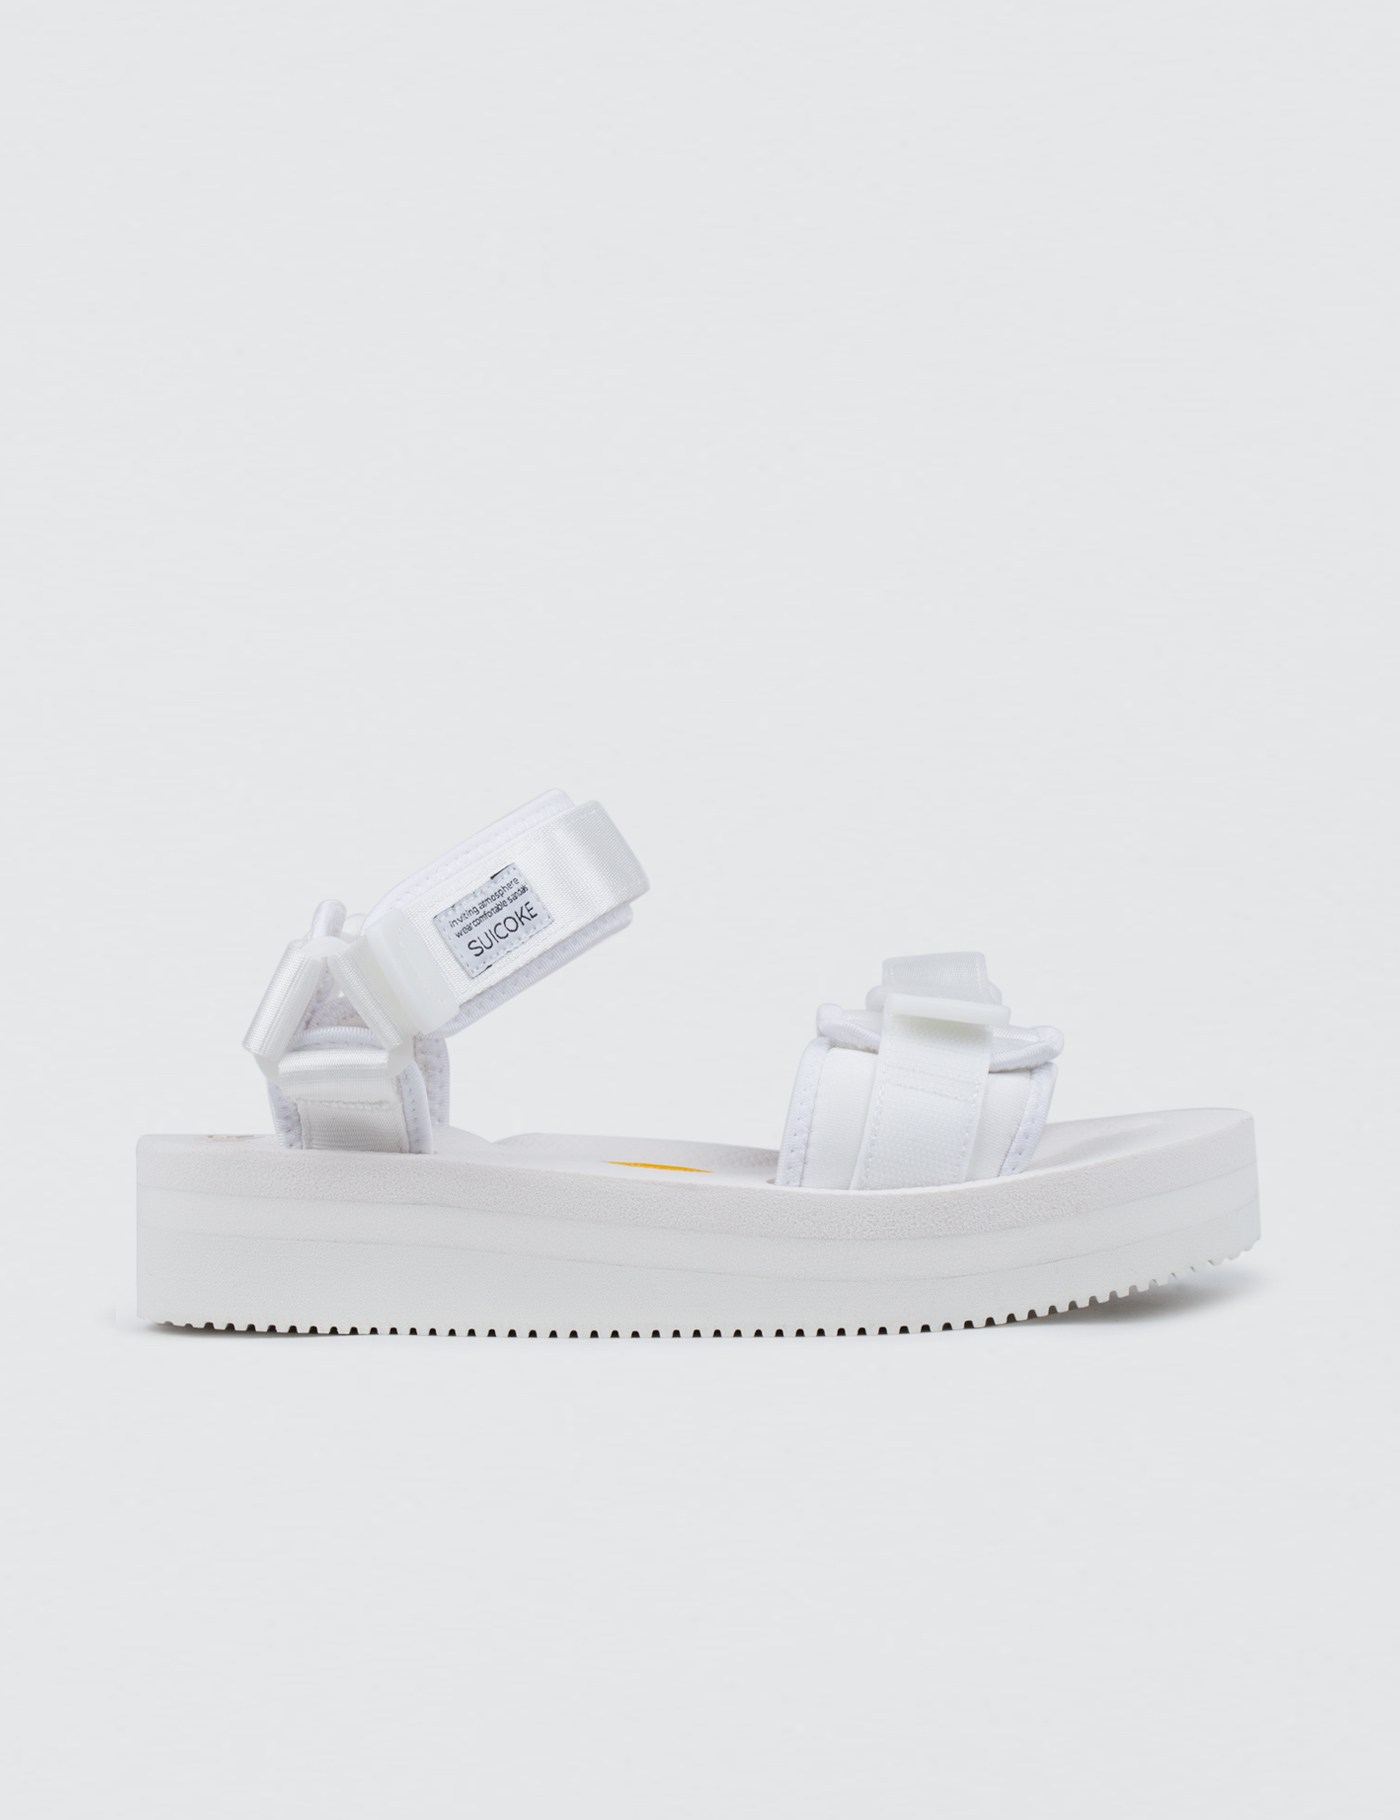 beacce8d613 Buy Original Suicoke CEL-VPO Sandal at Indonesia